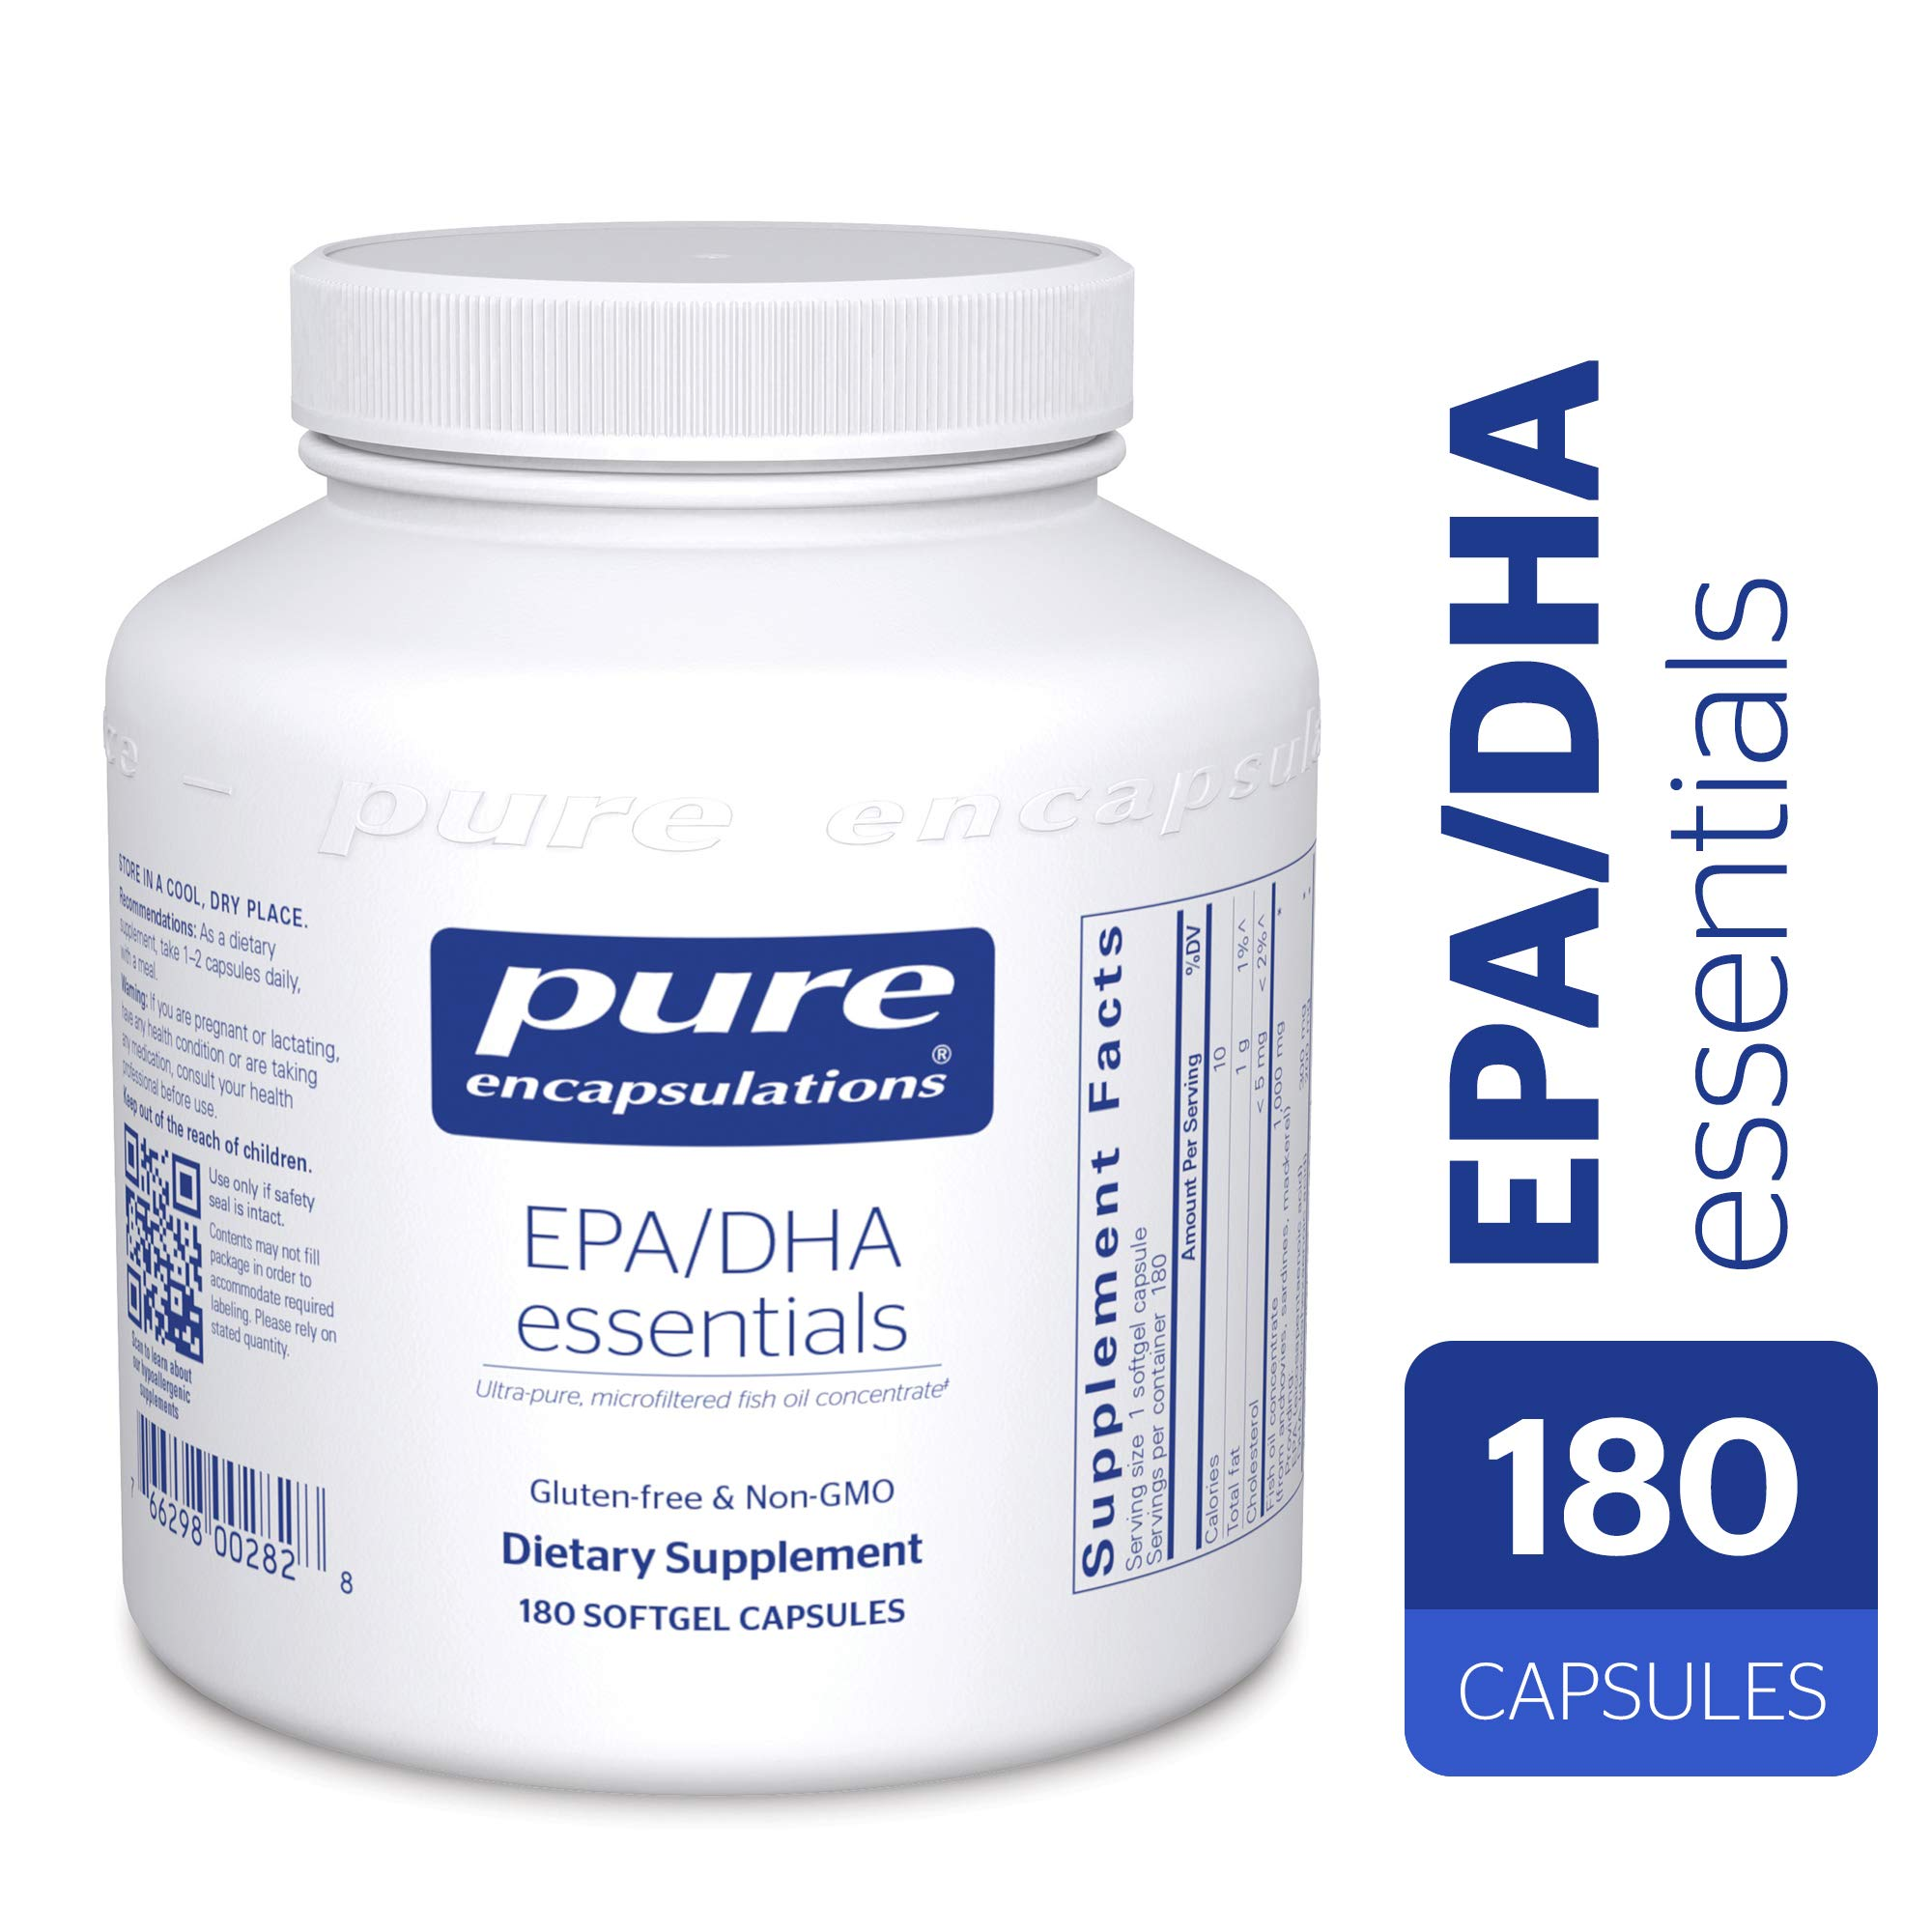 Pure Encapsulations - EPA/DHA Essentials - Ultra-Pure, Molecularly Distilled Fish Oil Concentrate - 180 Softgel Capsules by Pure Encapsulations